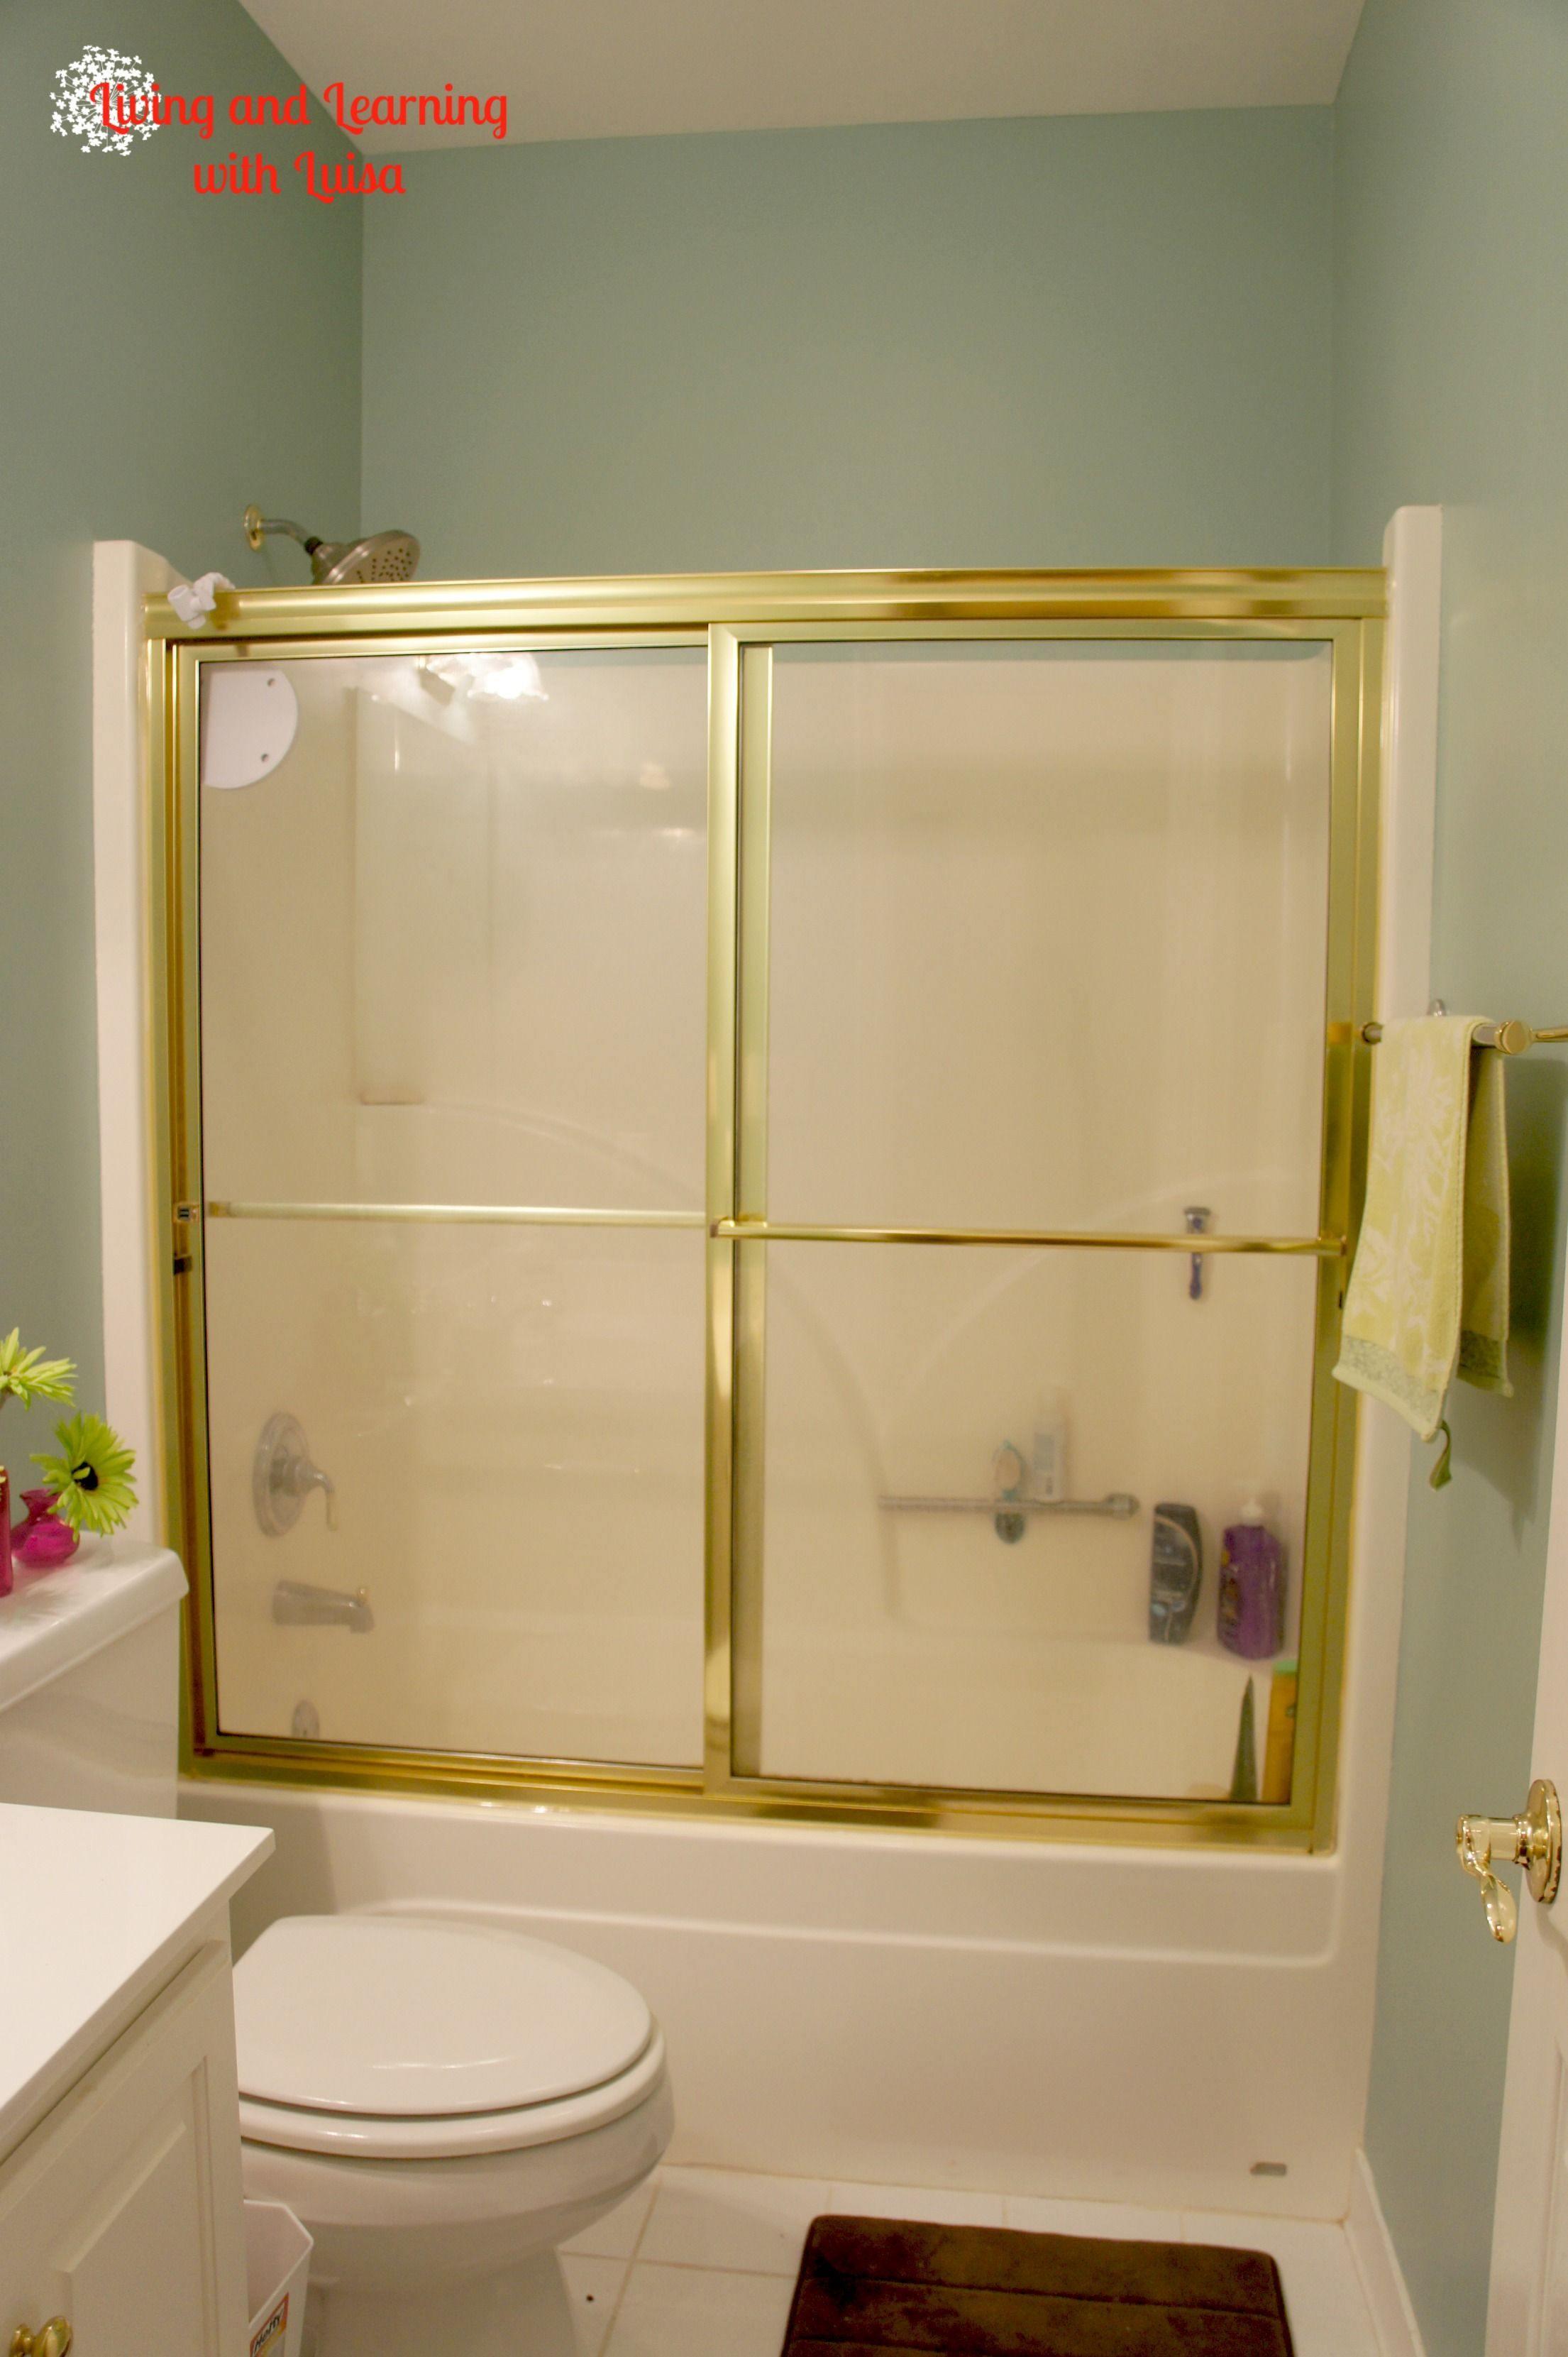 Shower doors be gone step by step guide to removing for Showers without glass